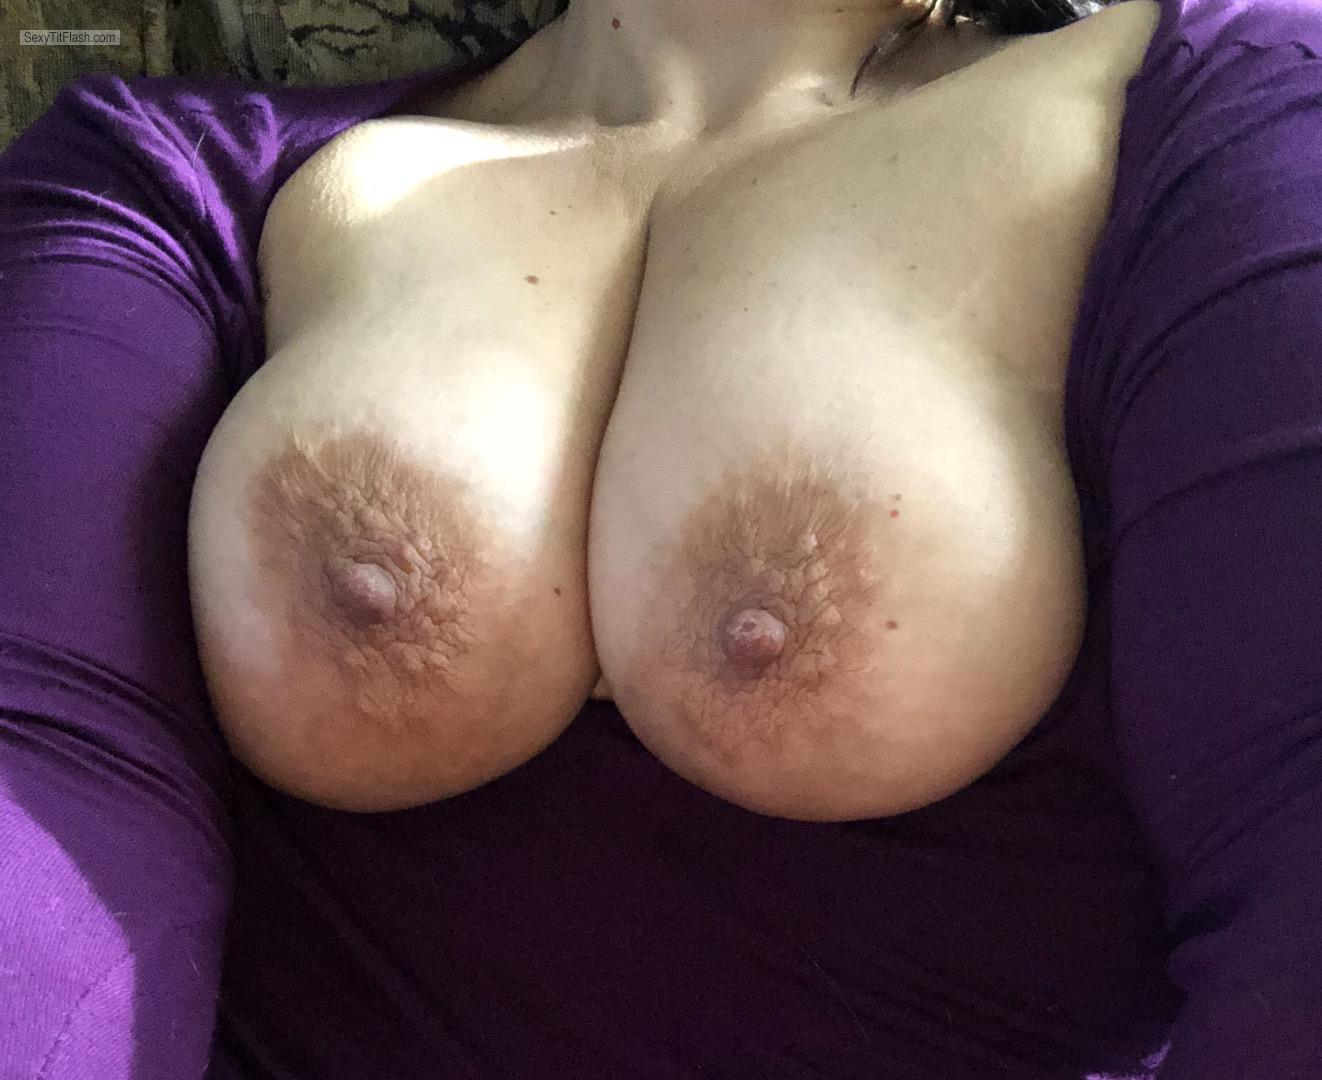 Tit Flash: My Medium Tits (Selfie) - Daisy from United States